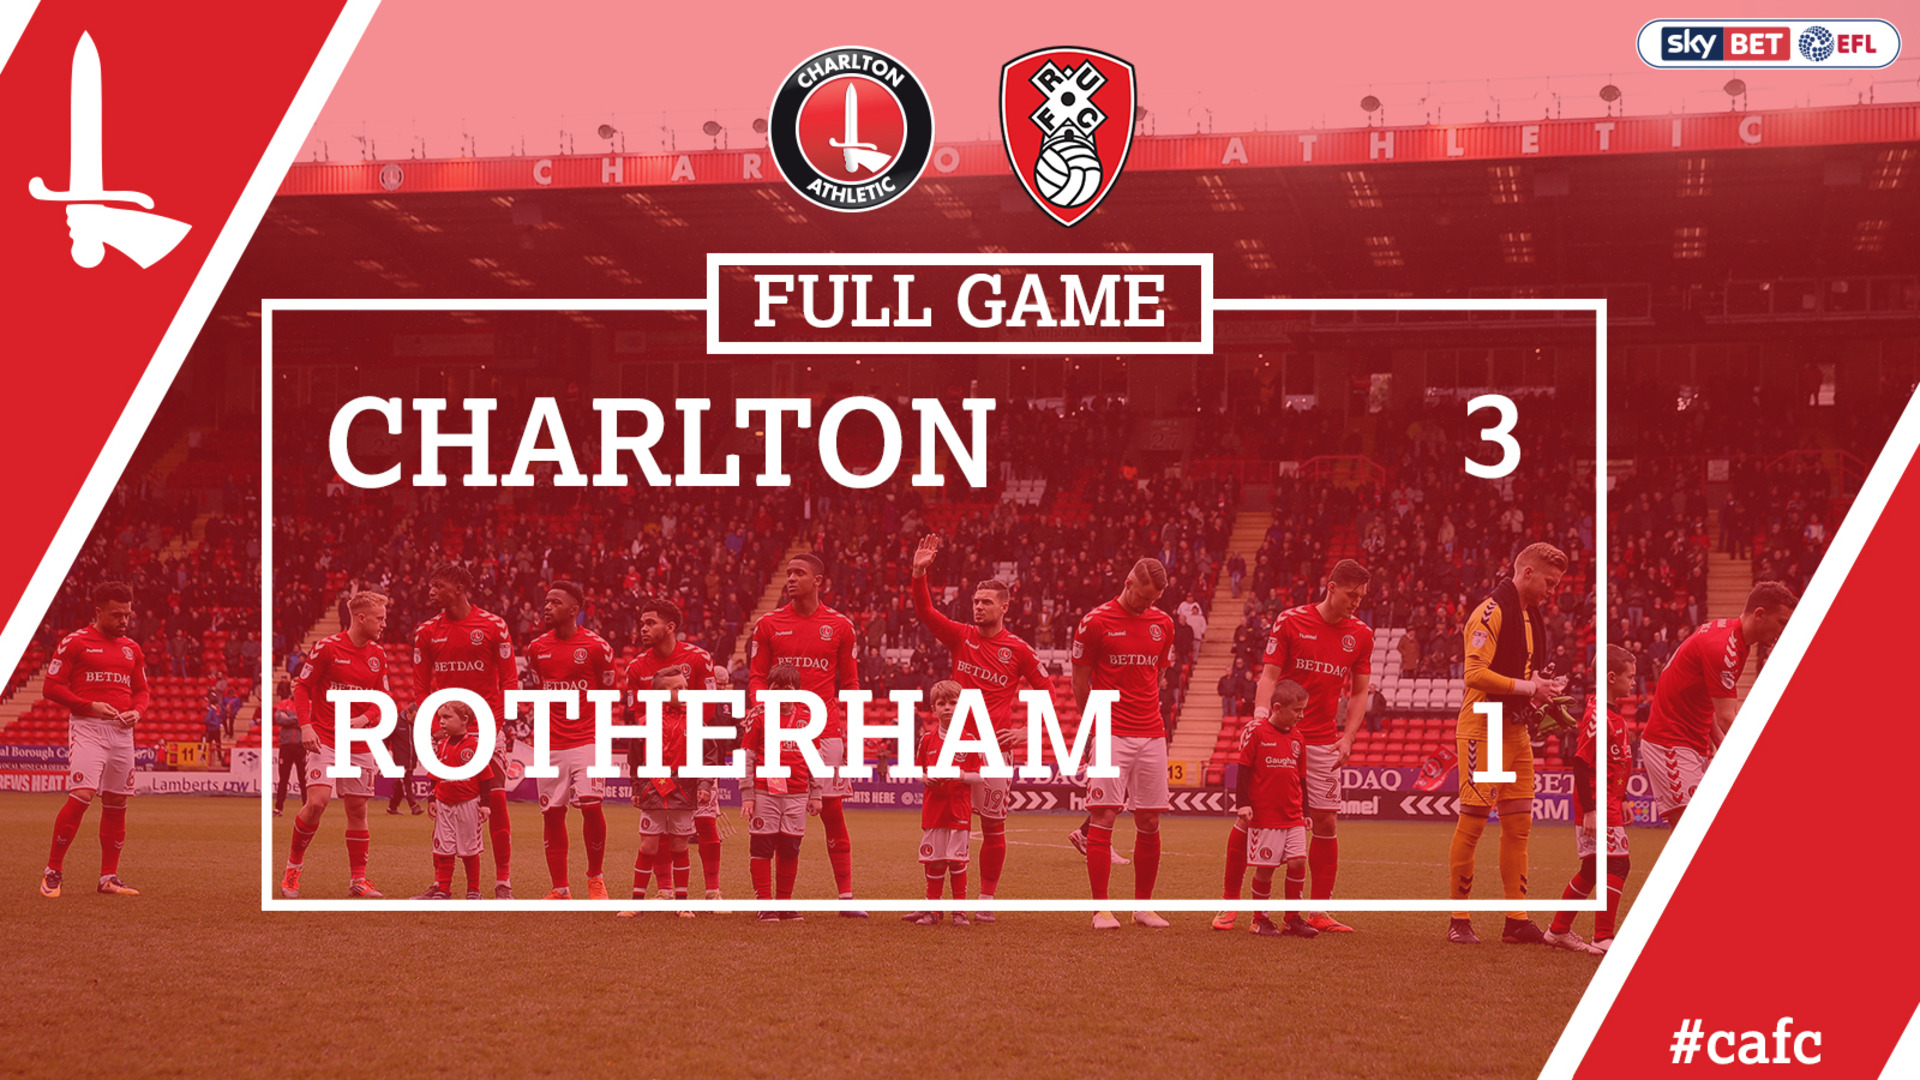 FULL GAME | Charlton 3 Rotherham 1 (April 2018)